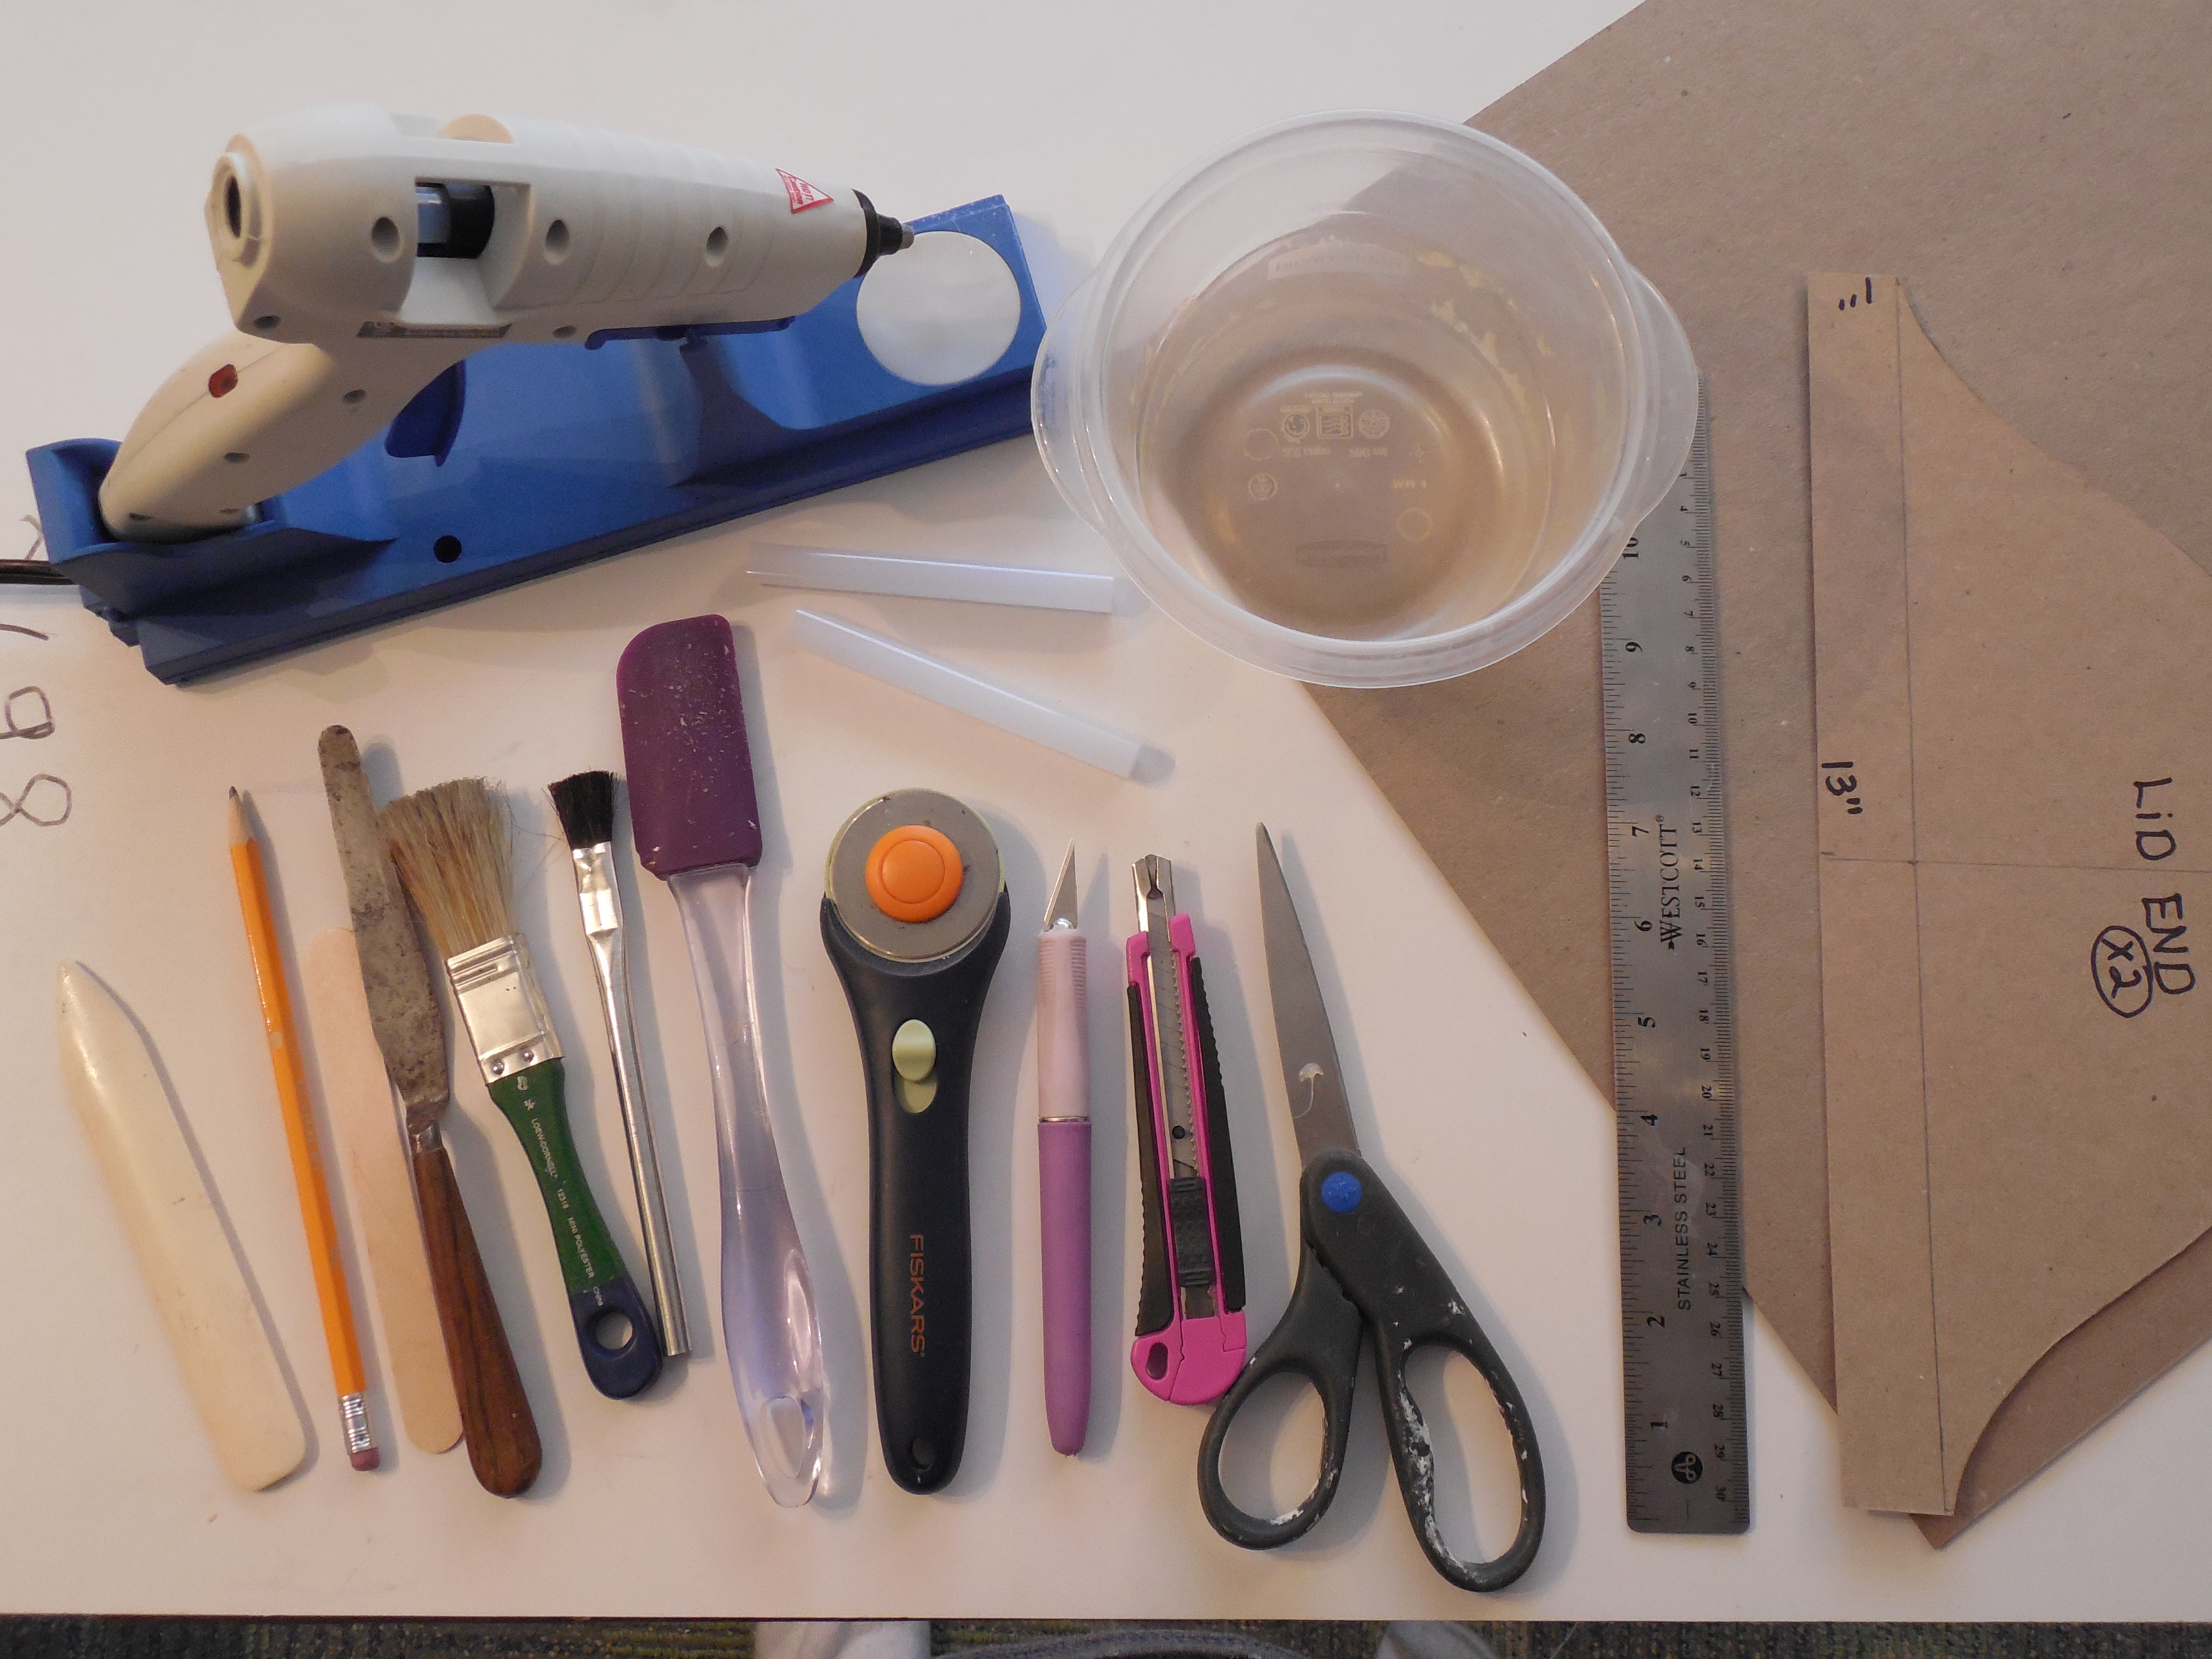 Picture of Tools & Materials